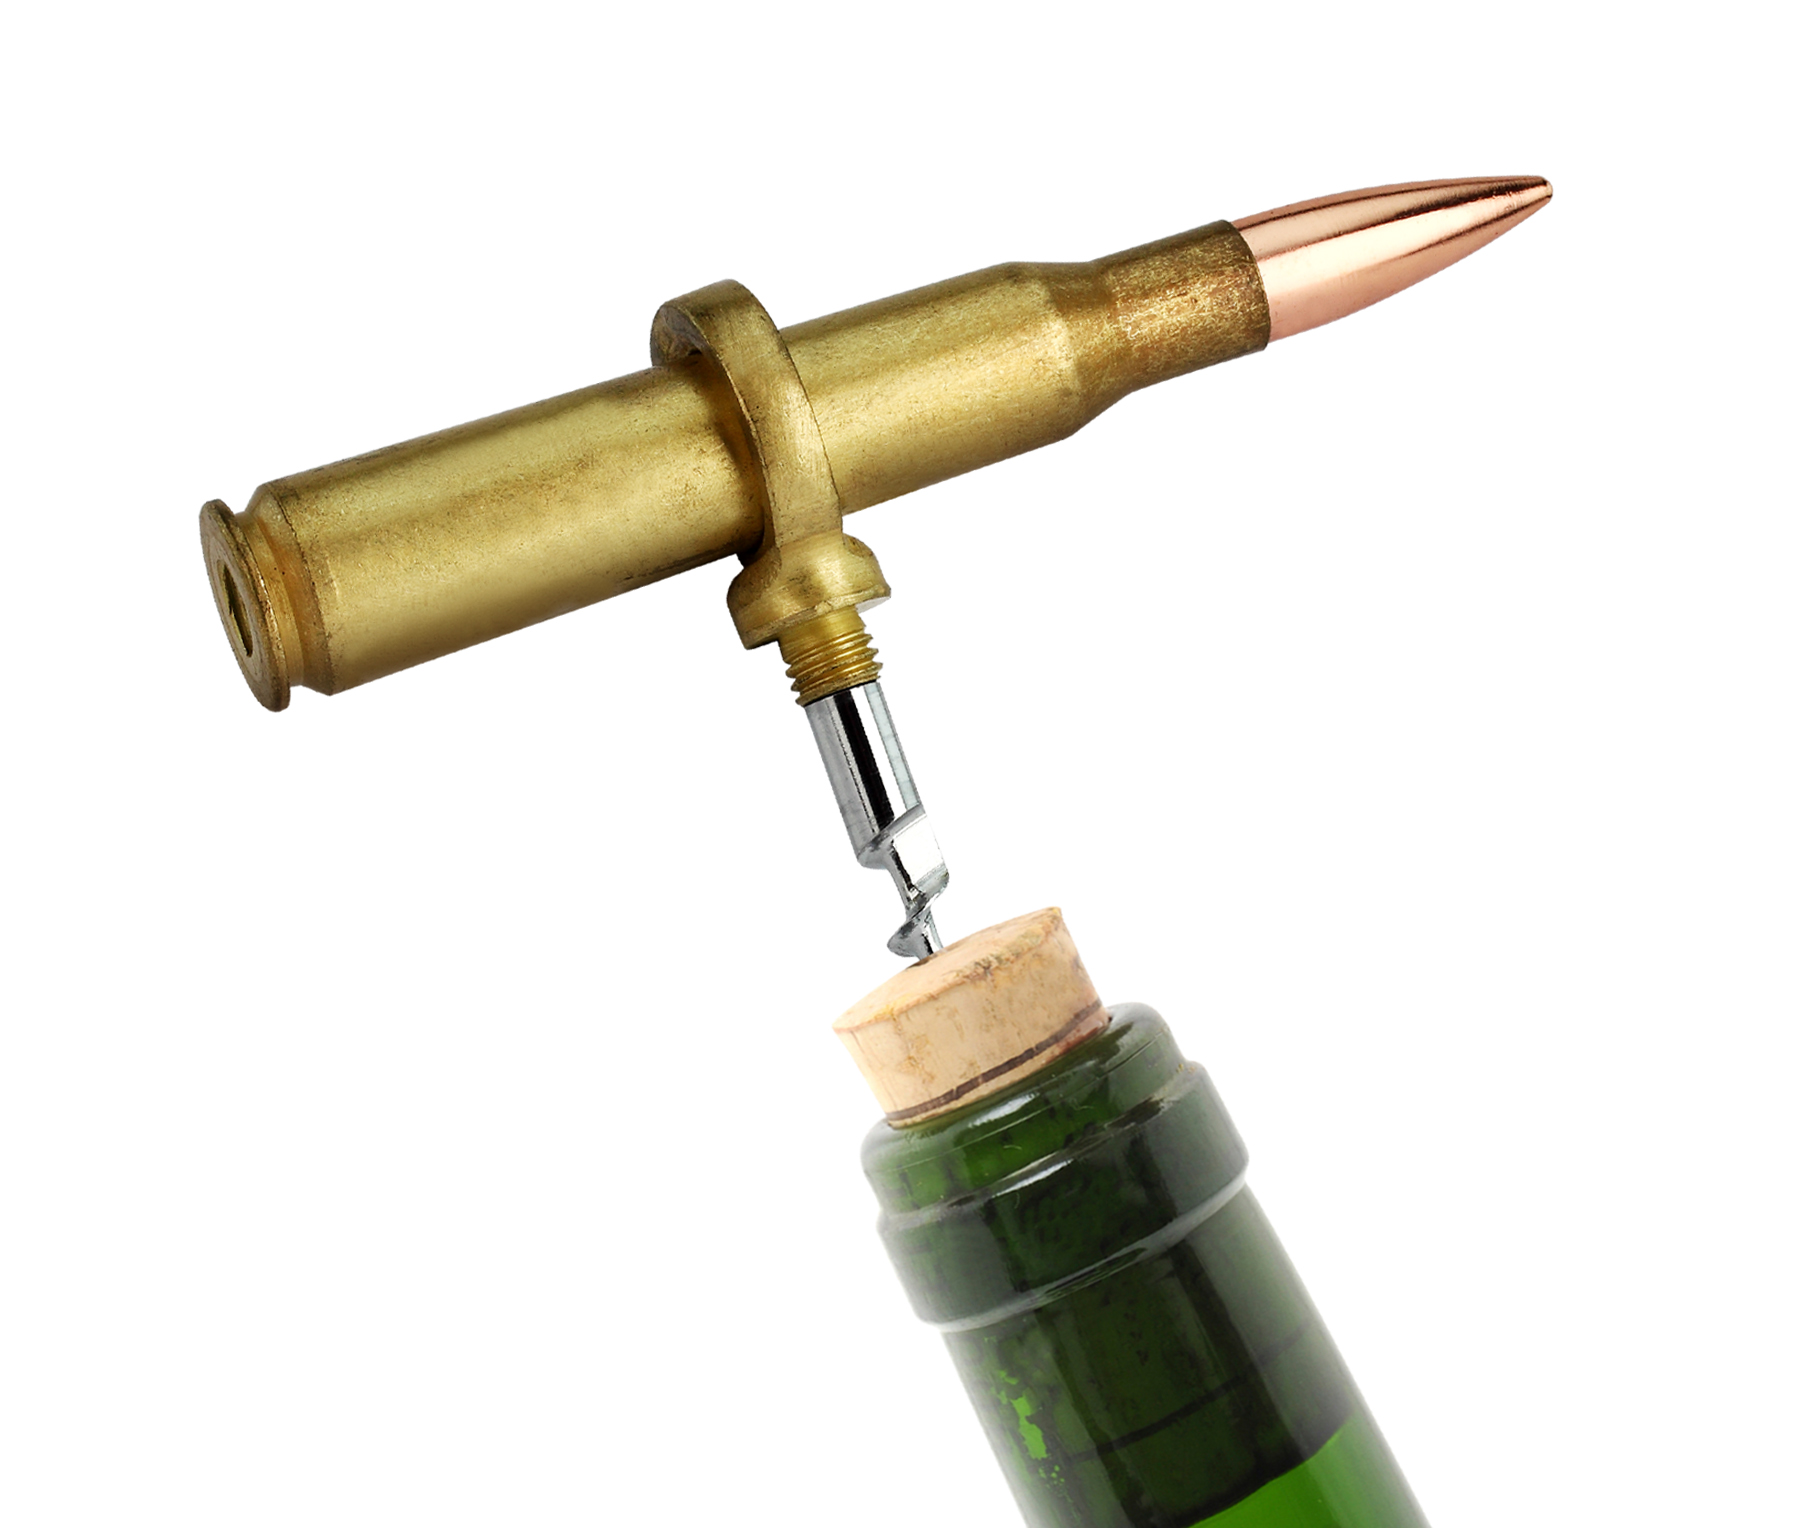 50 Caliber Corkscrew